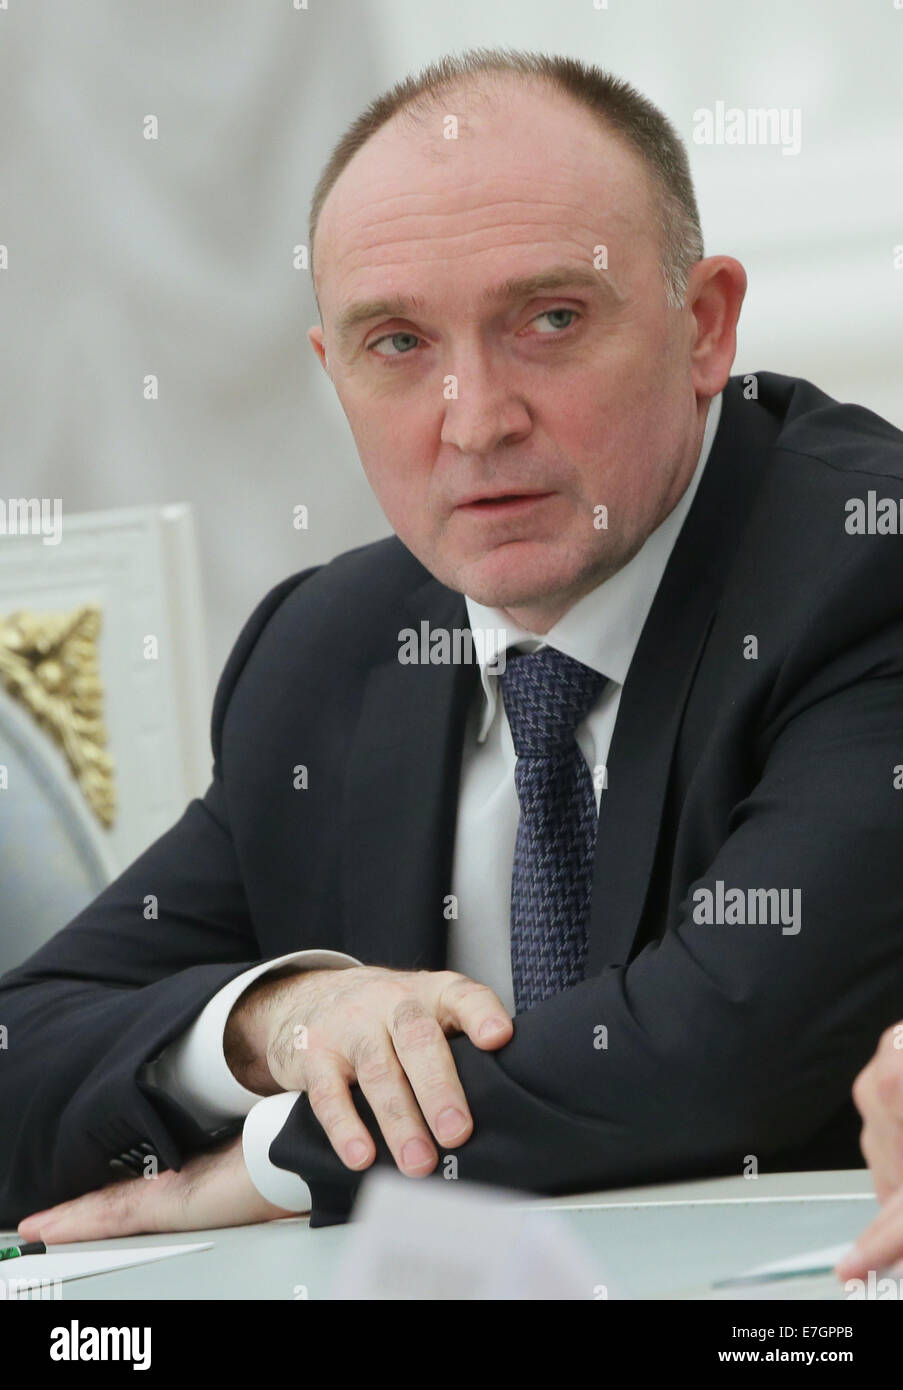 Moscow, Russia. 17th Sep, 2014. Governor elect of Chelyabinsk Region, Boris Dubrovsky, at a meeting between the - Stock Image